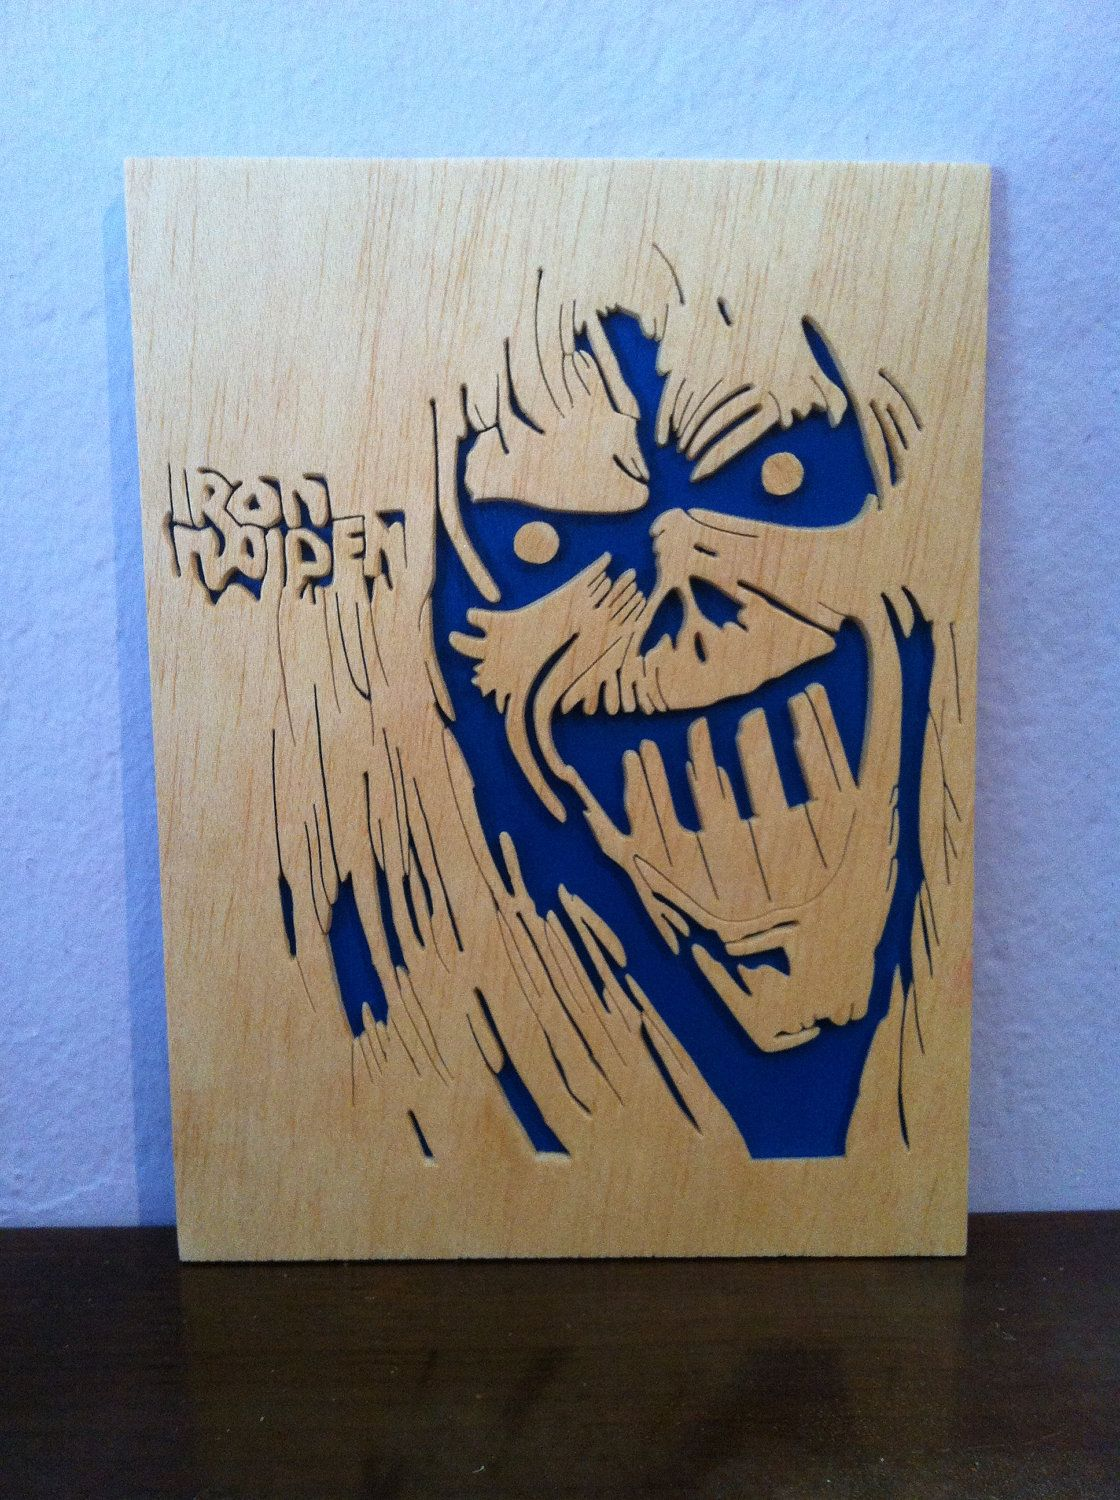 Iron Maiden Wooden Picture Scroll Saw 8 99 Scroll Saw